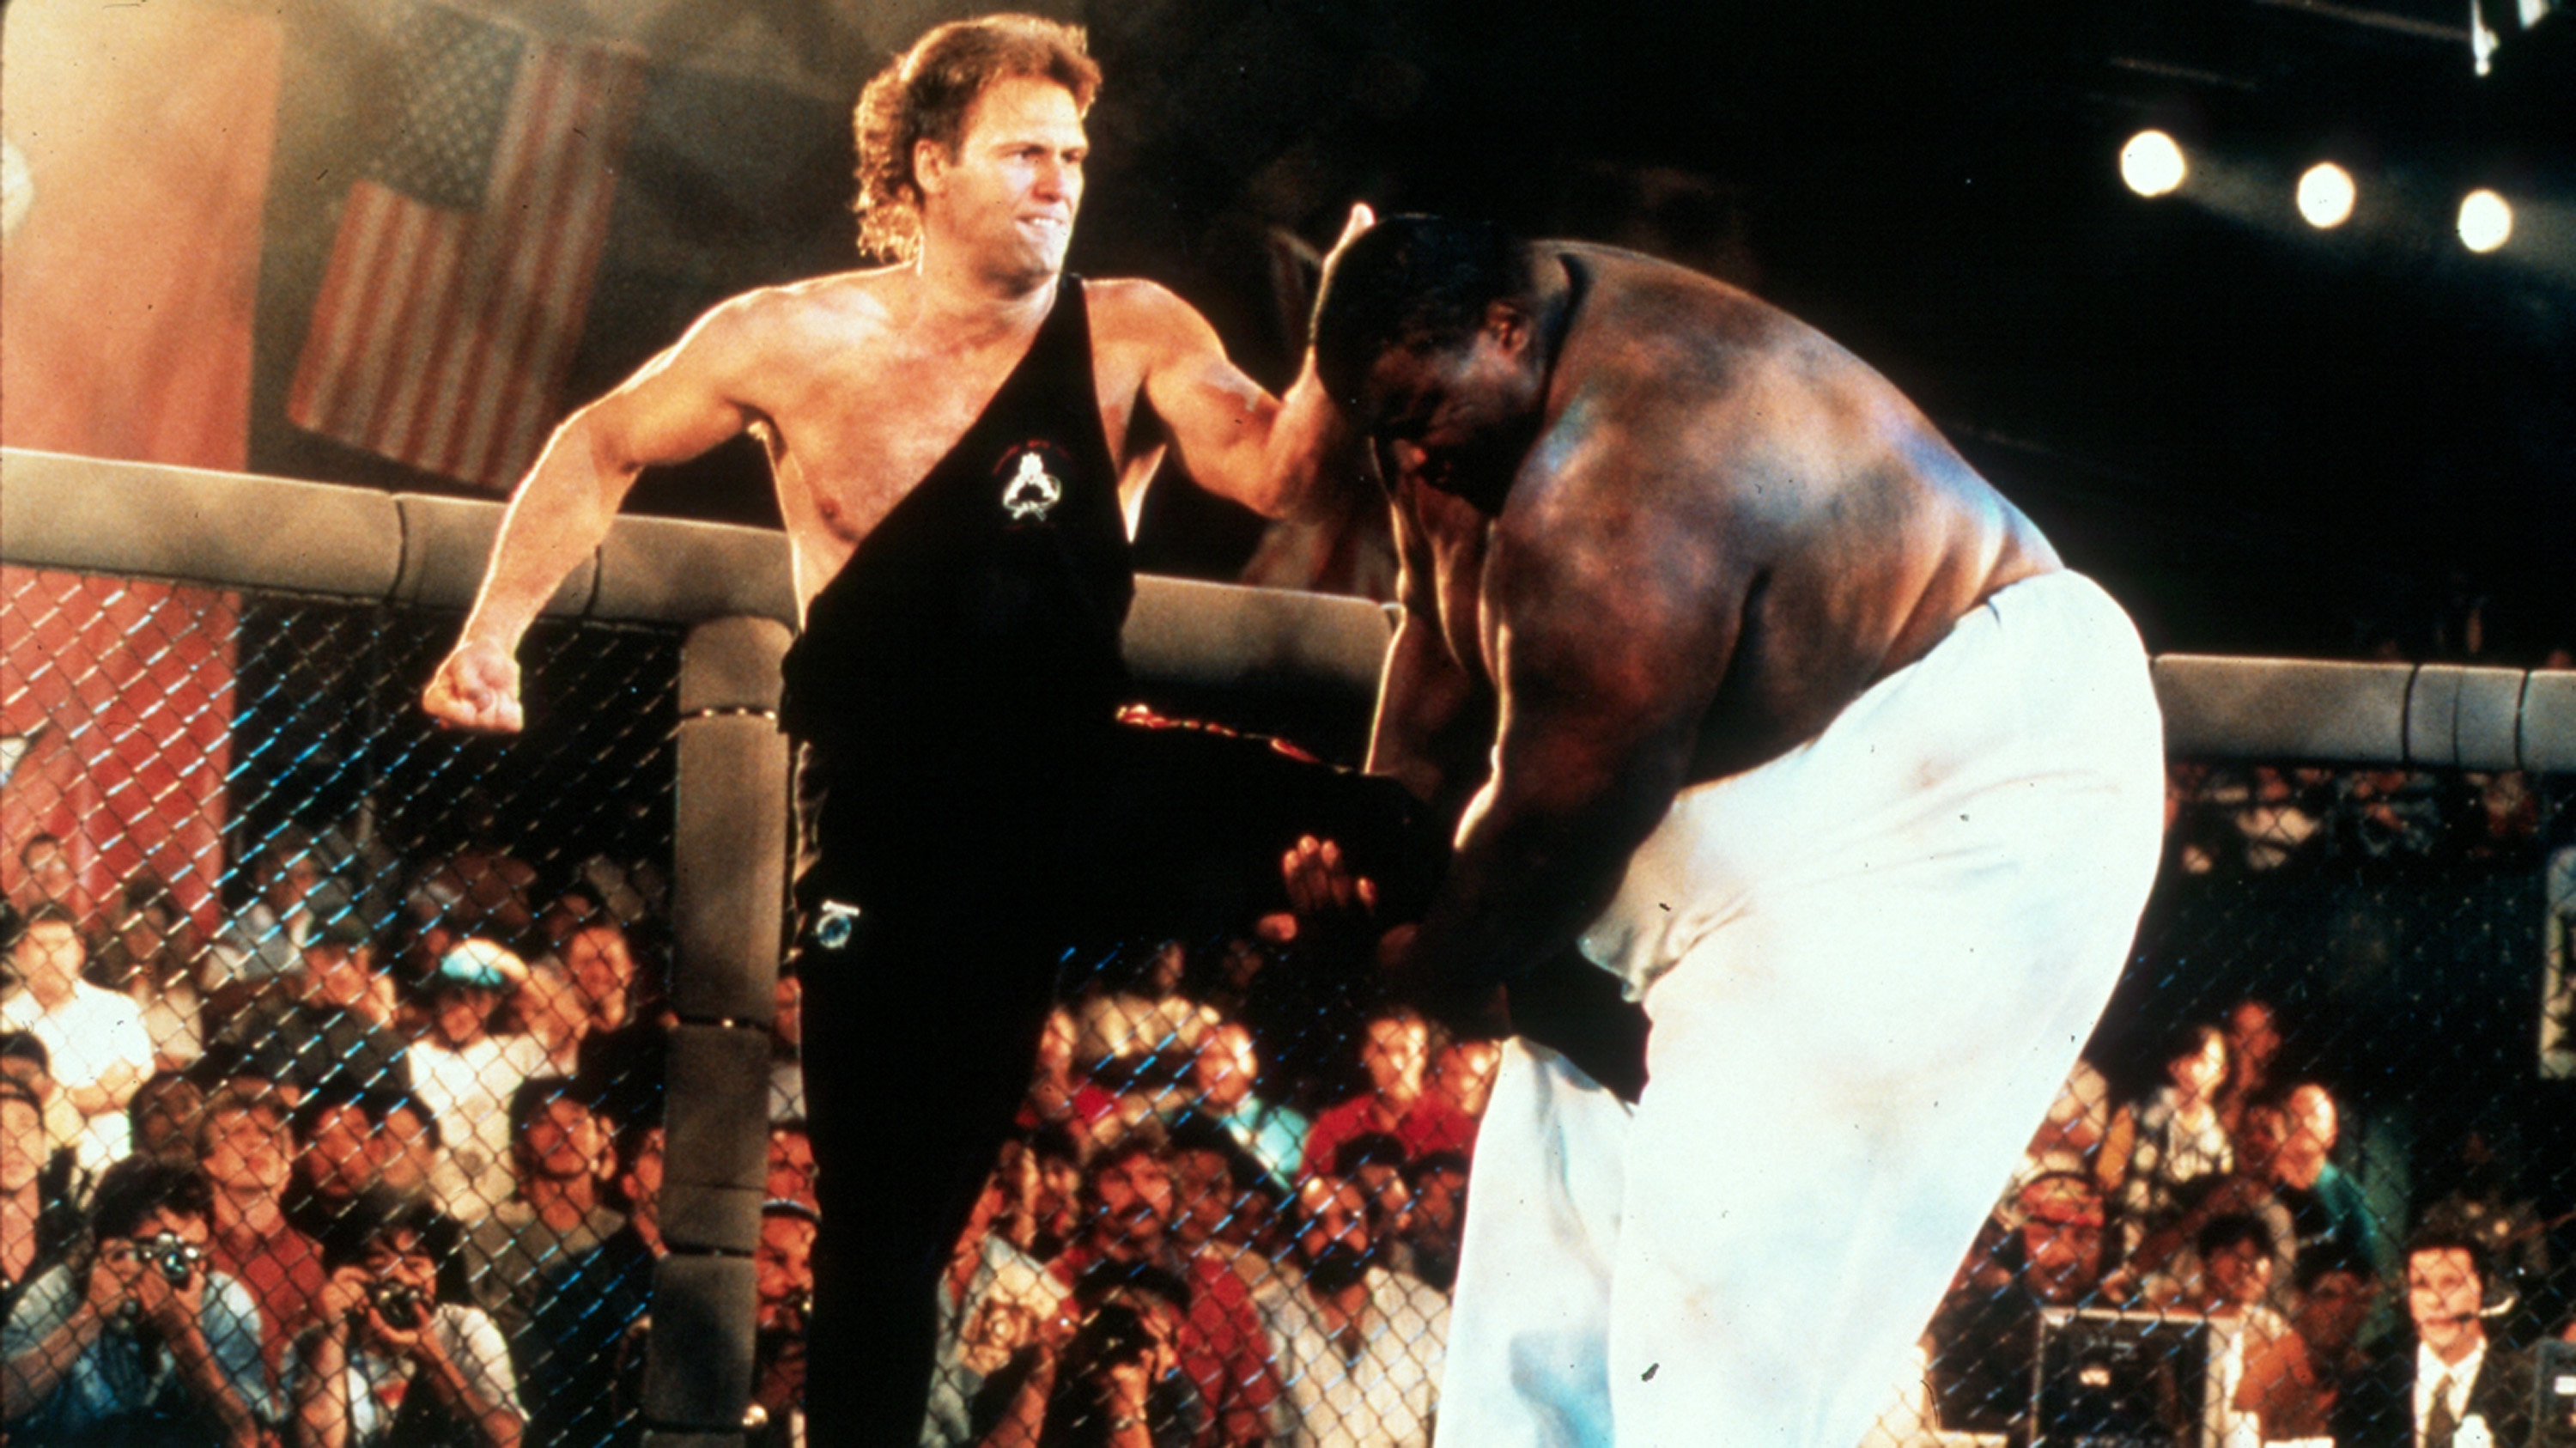 Size didn't matter as Hackney upset 600-pound Yarborough (Photo credit: UFC Archives)